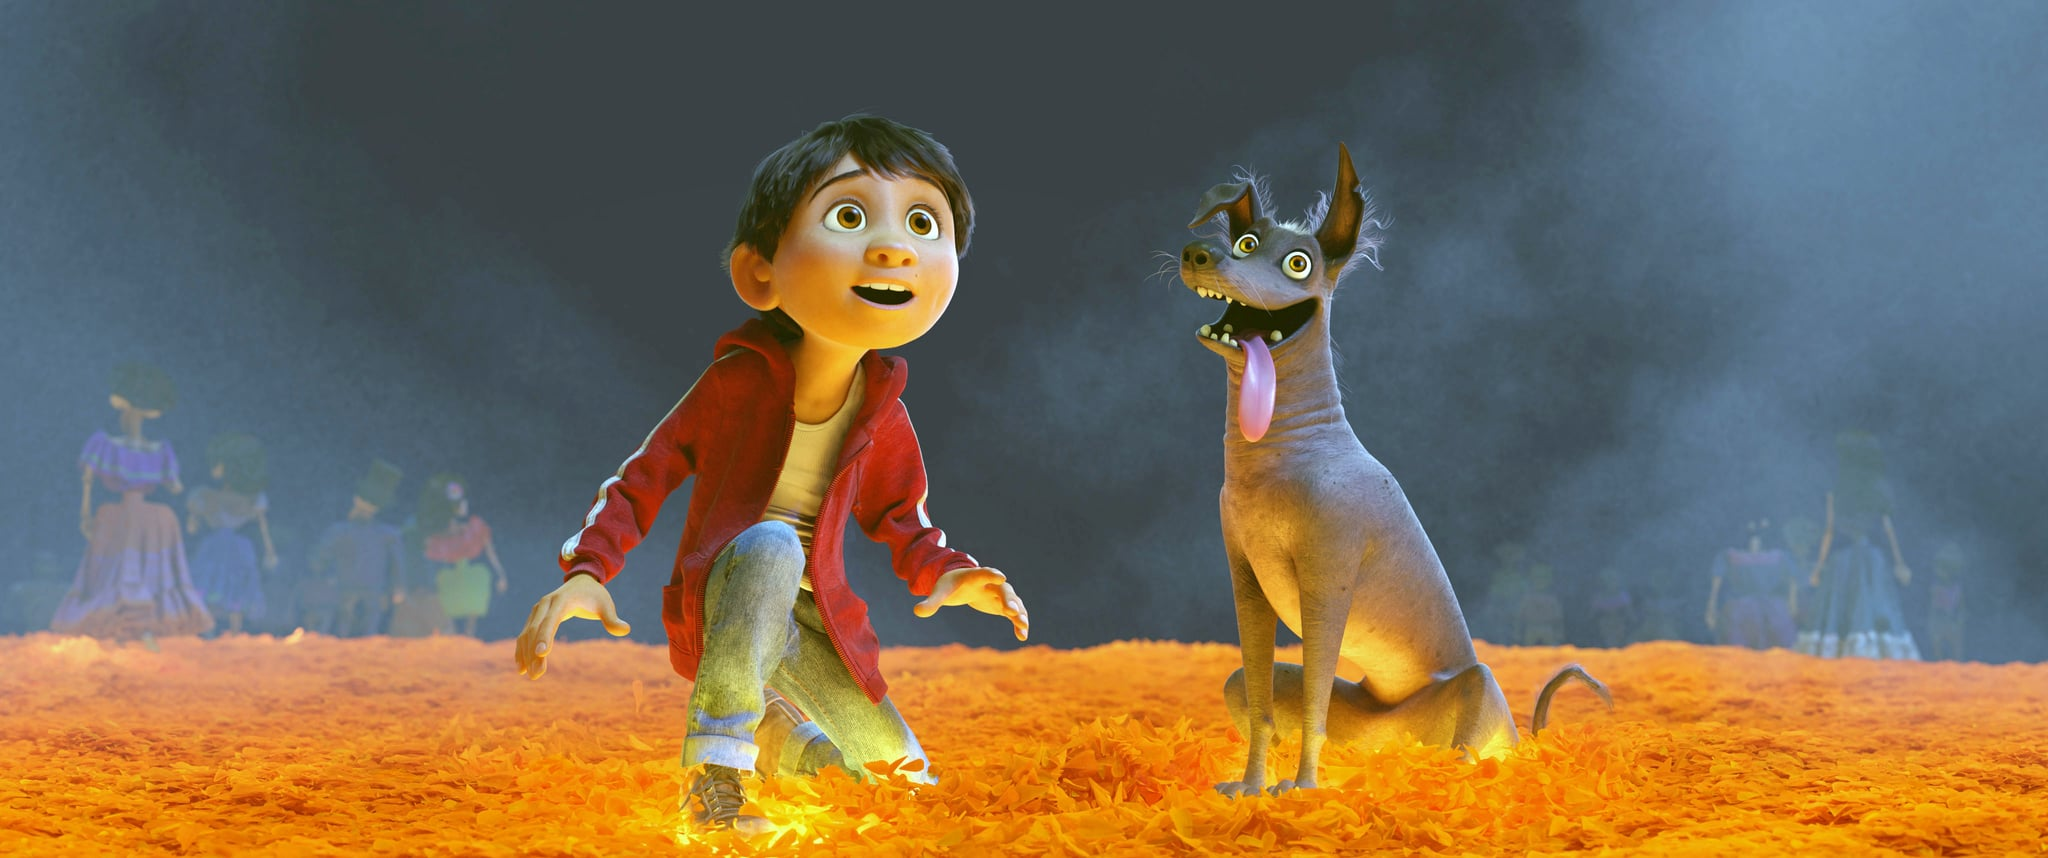 COCO, from left: Miguel (voice: Anthony Gonzalez), Dante, 2017.  Walt Disney Studios Motion Pictures /Courtesy Everett Collection